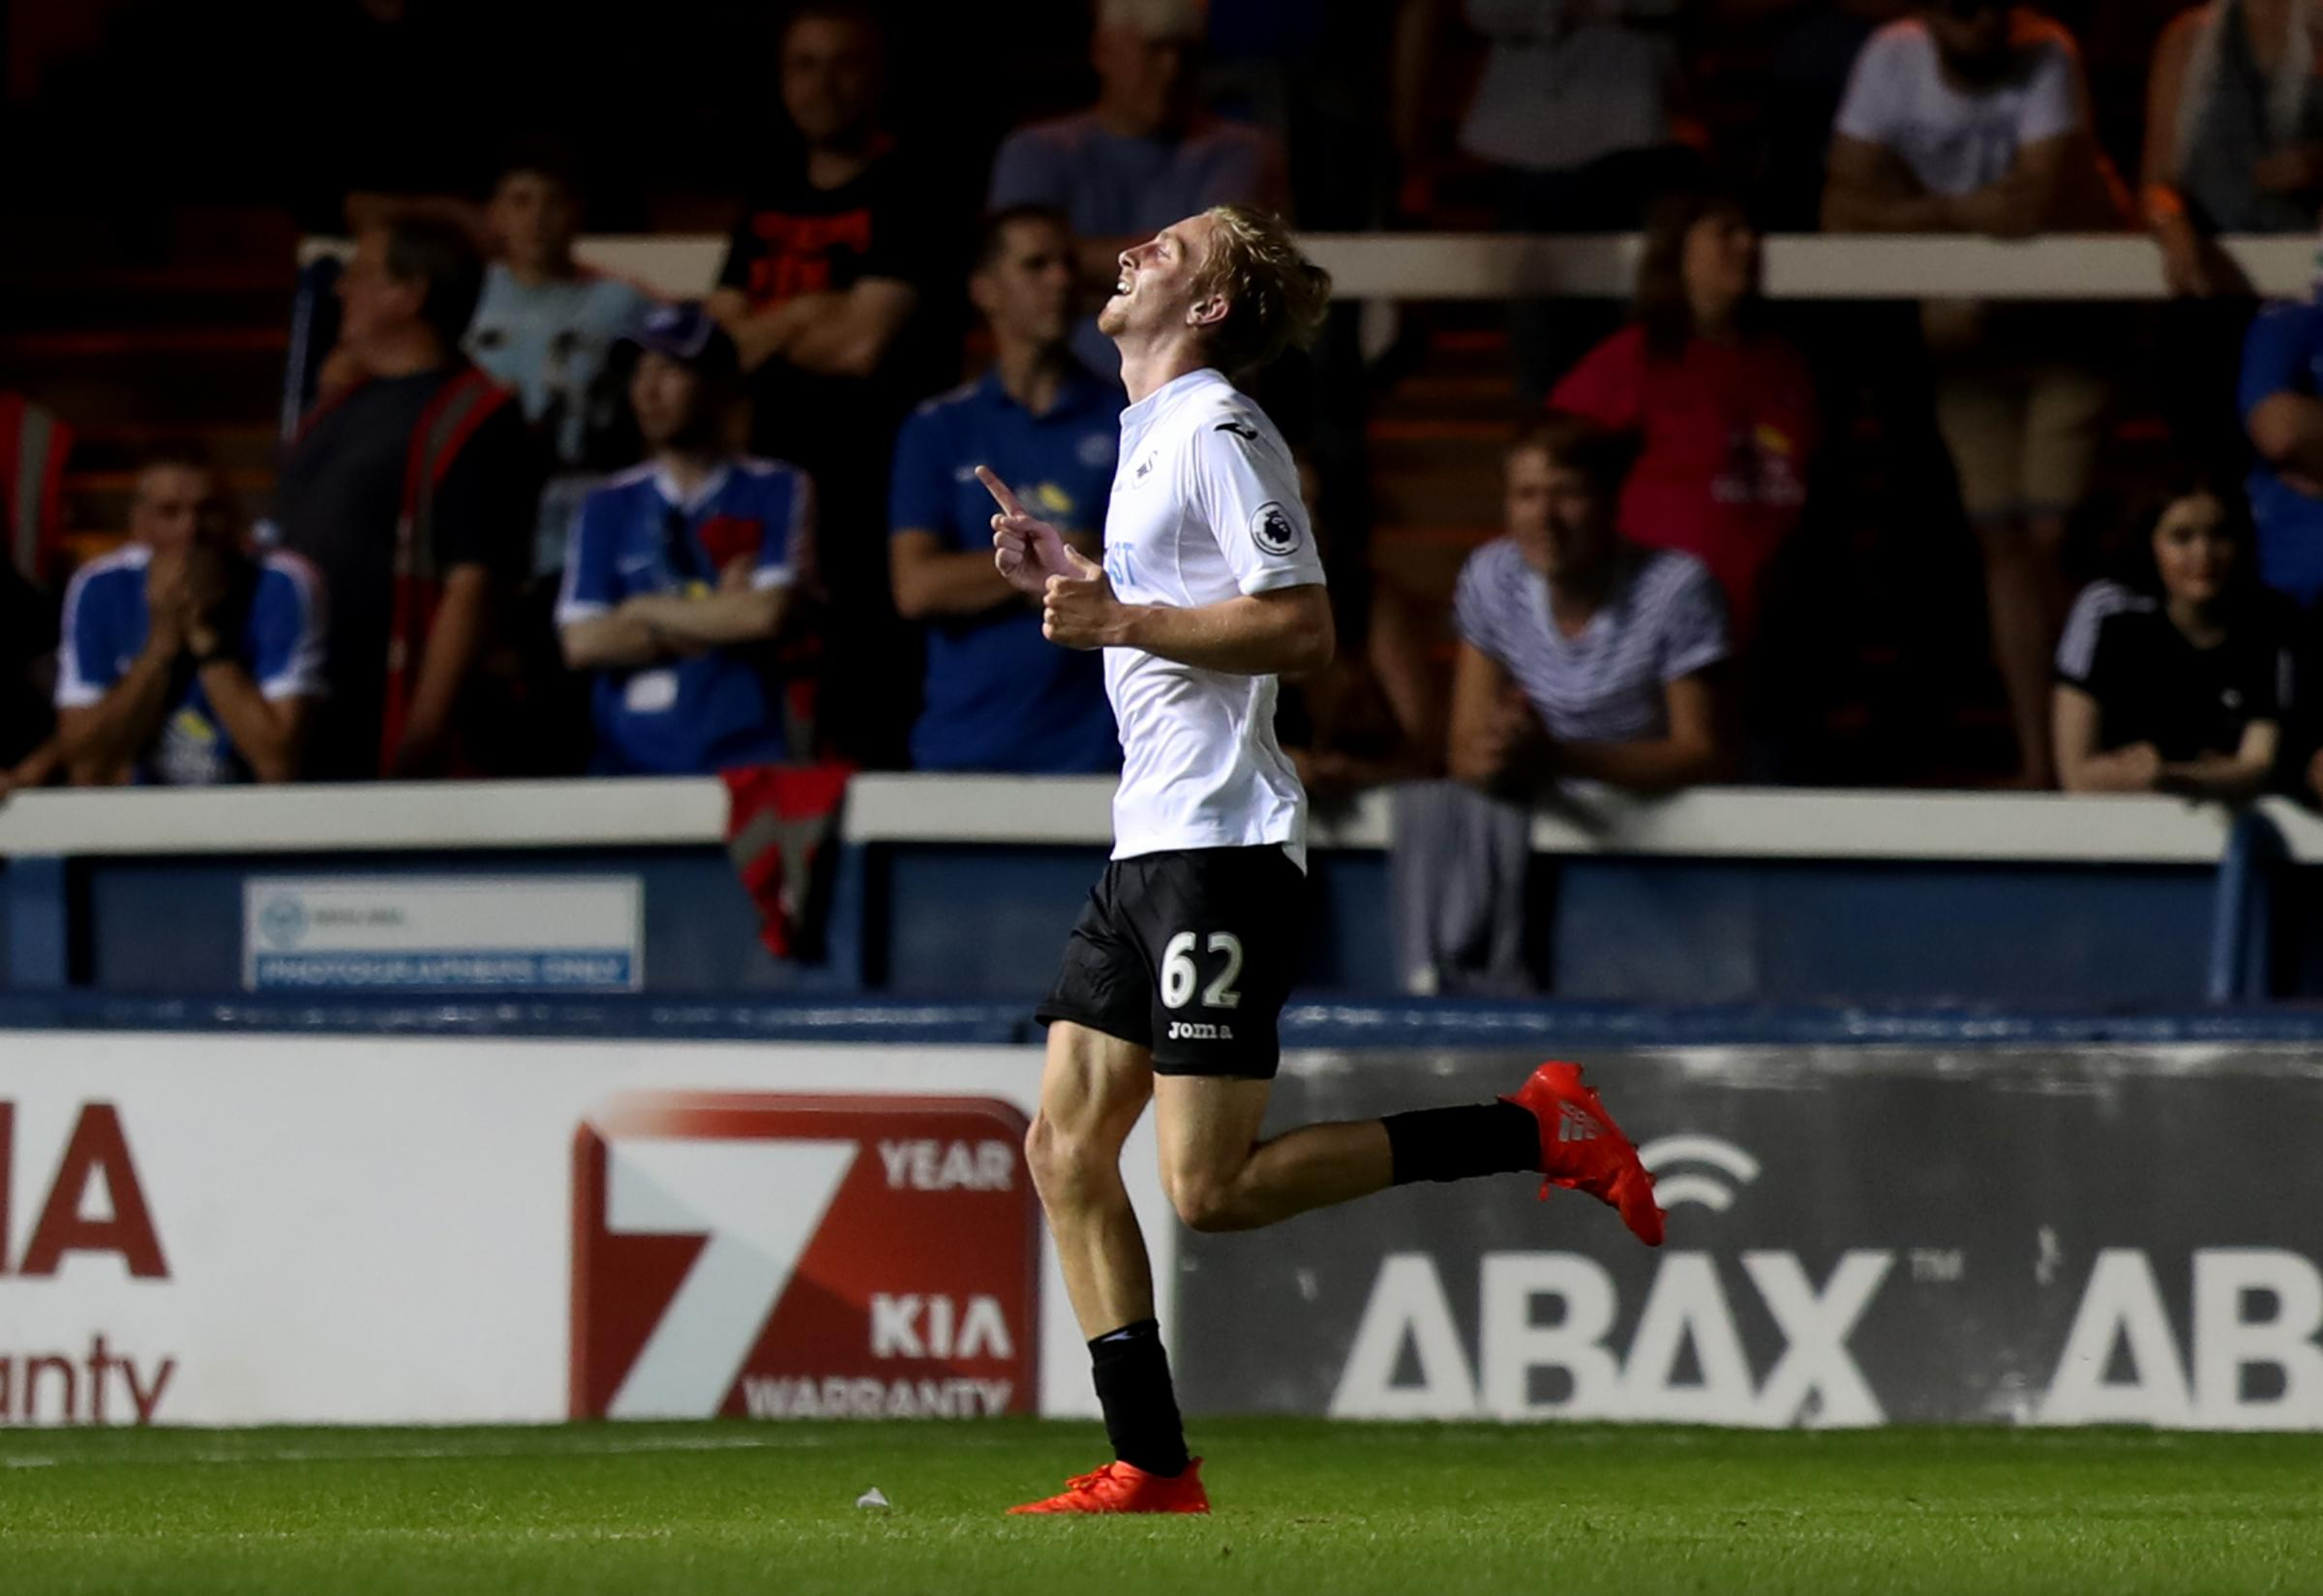 Swansea City's Ollie McBurnie celebrates scoring his side's third goal of the game during the EFL Cup, Second Round match at the ABAX Stadium, Peterborough.